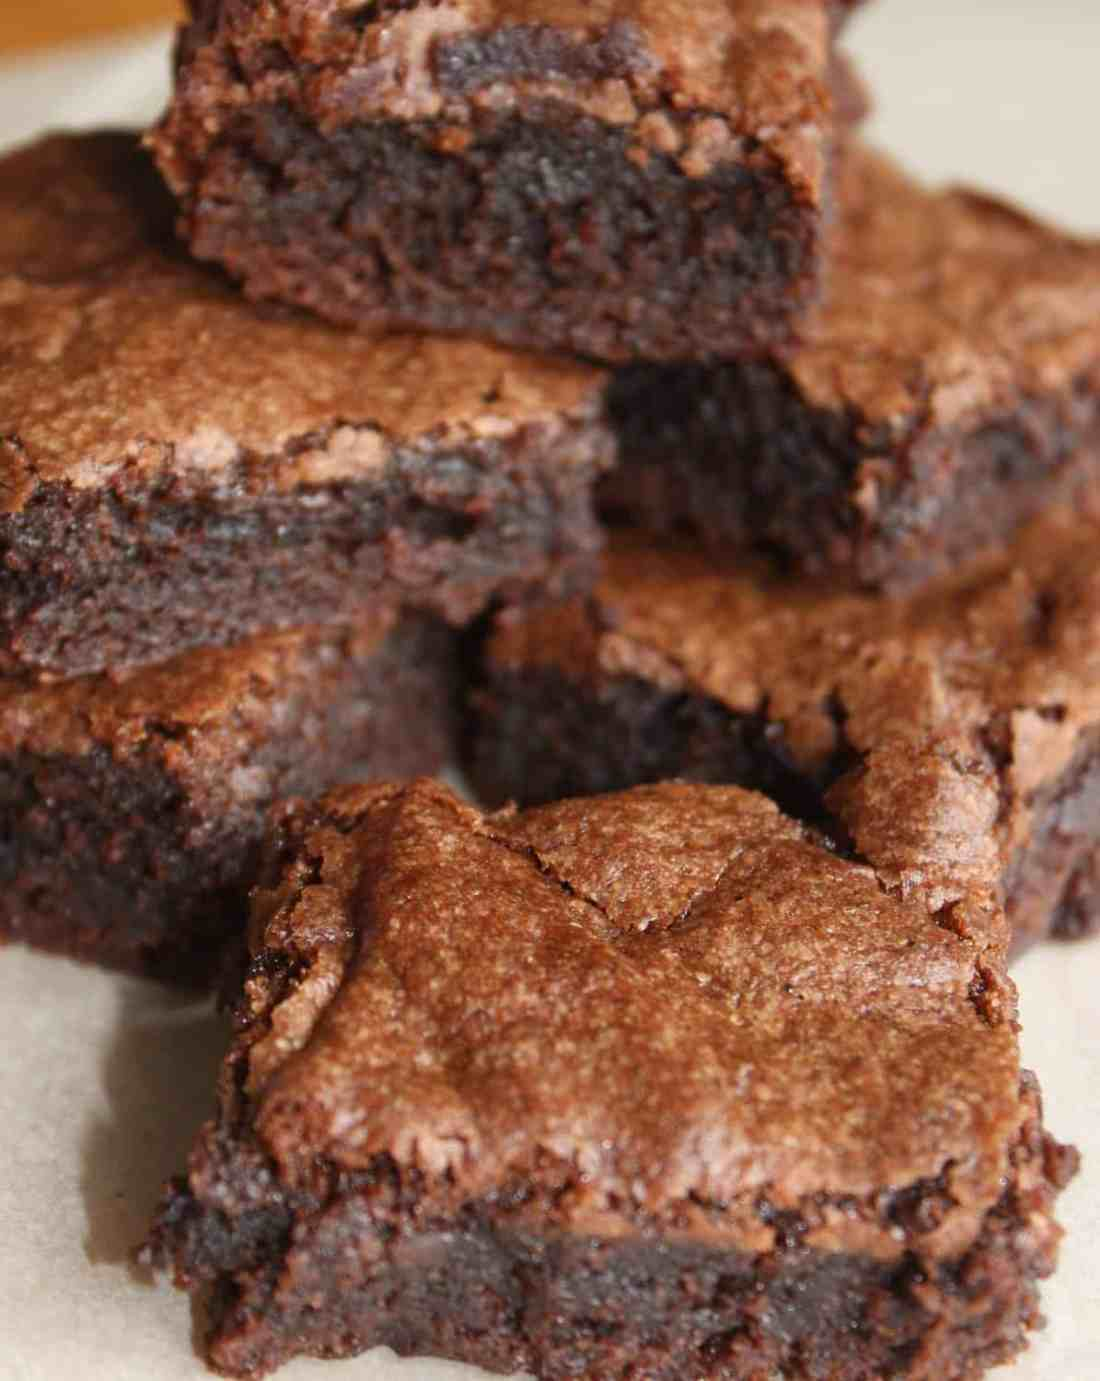 These chewy chocolate brownies are a decadent treat if you have been avoiding desserts due to a gluten intolerance.